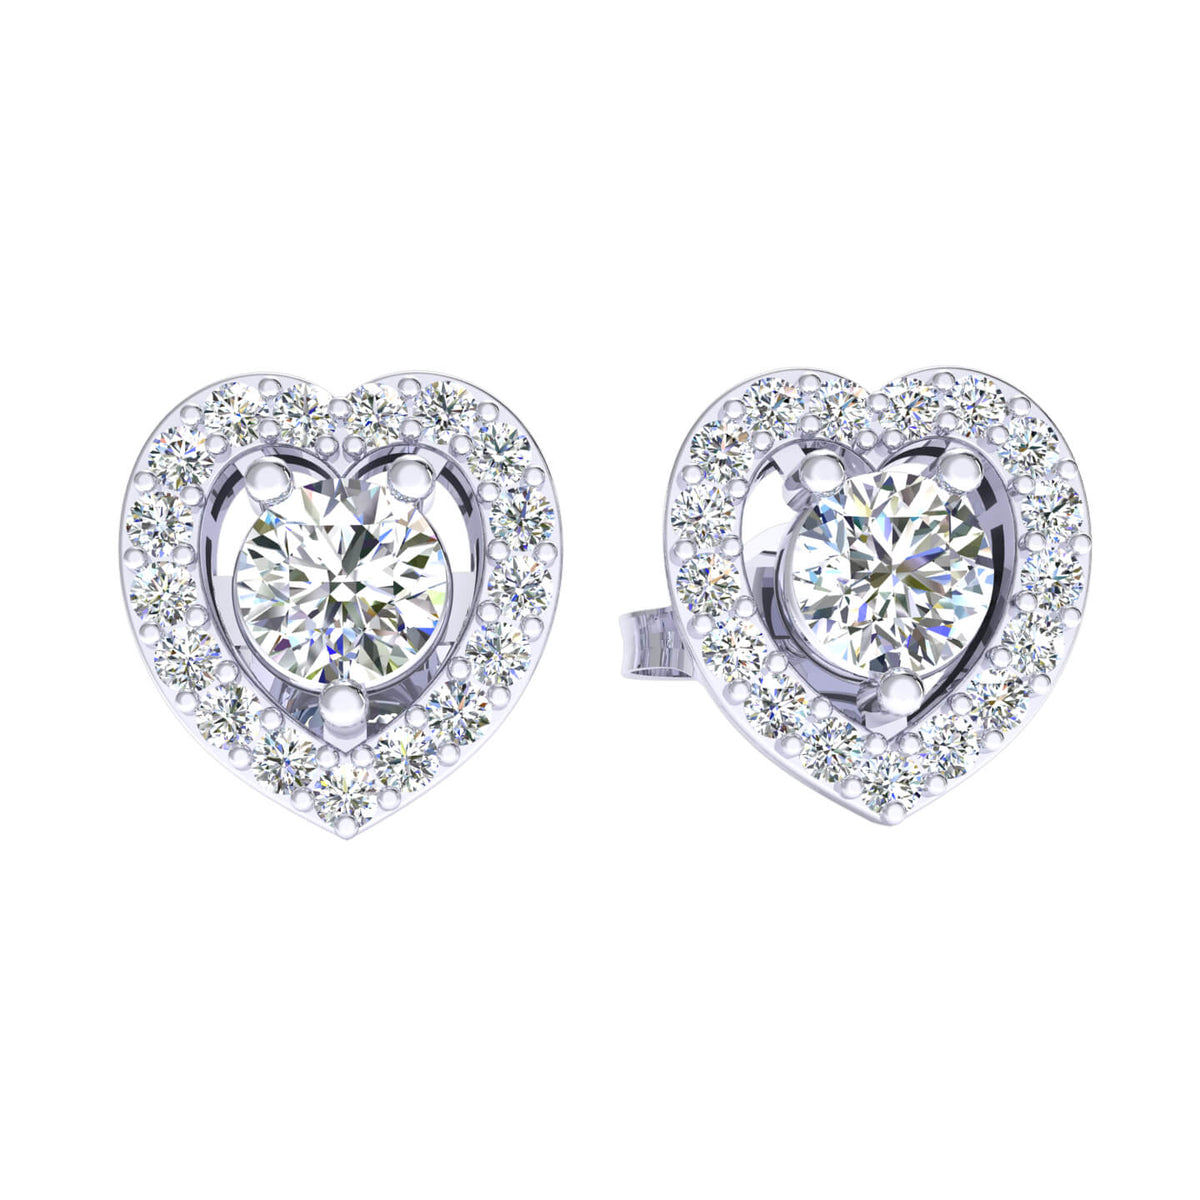 0.75 Ct Heart Round GH I1-I2 Diamond Stud Earrings For Womens 925 Sterling Silver